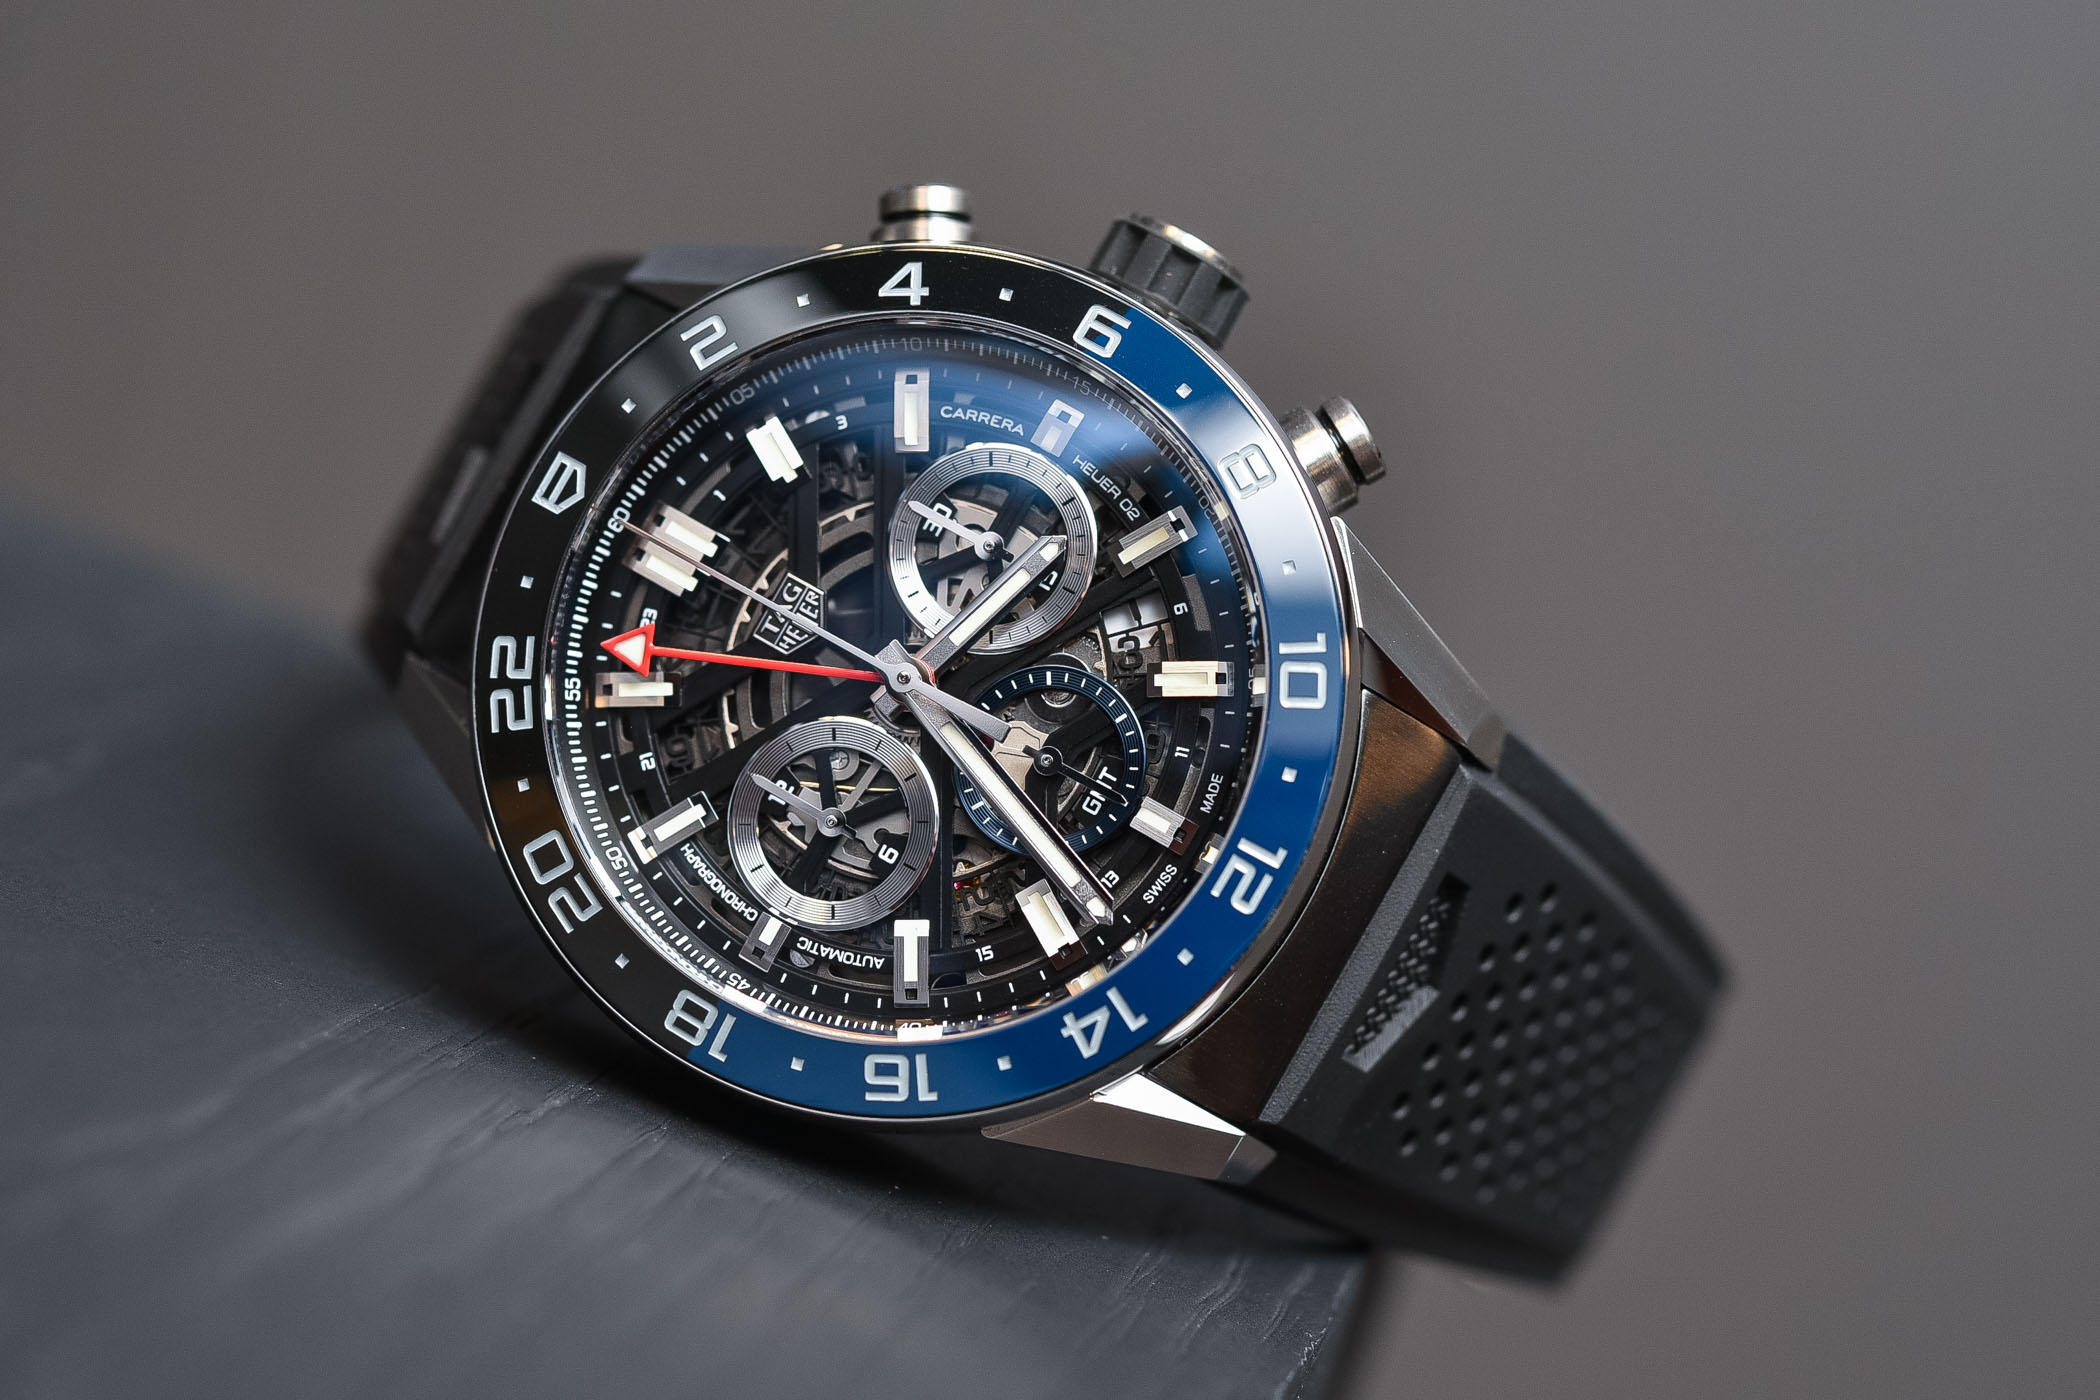 Best GMT Travellers watches Baselworld 2018 - TAG Heuer Carrera Heuer 02 GMT Chronograph